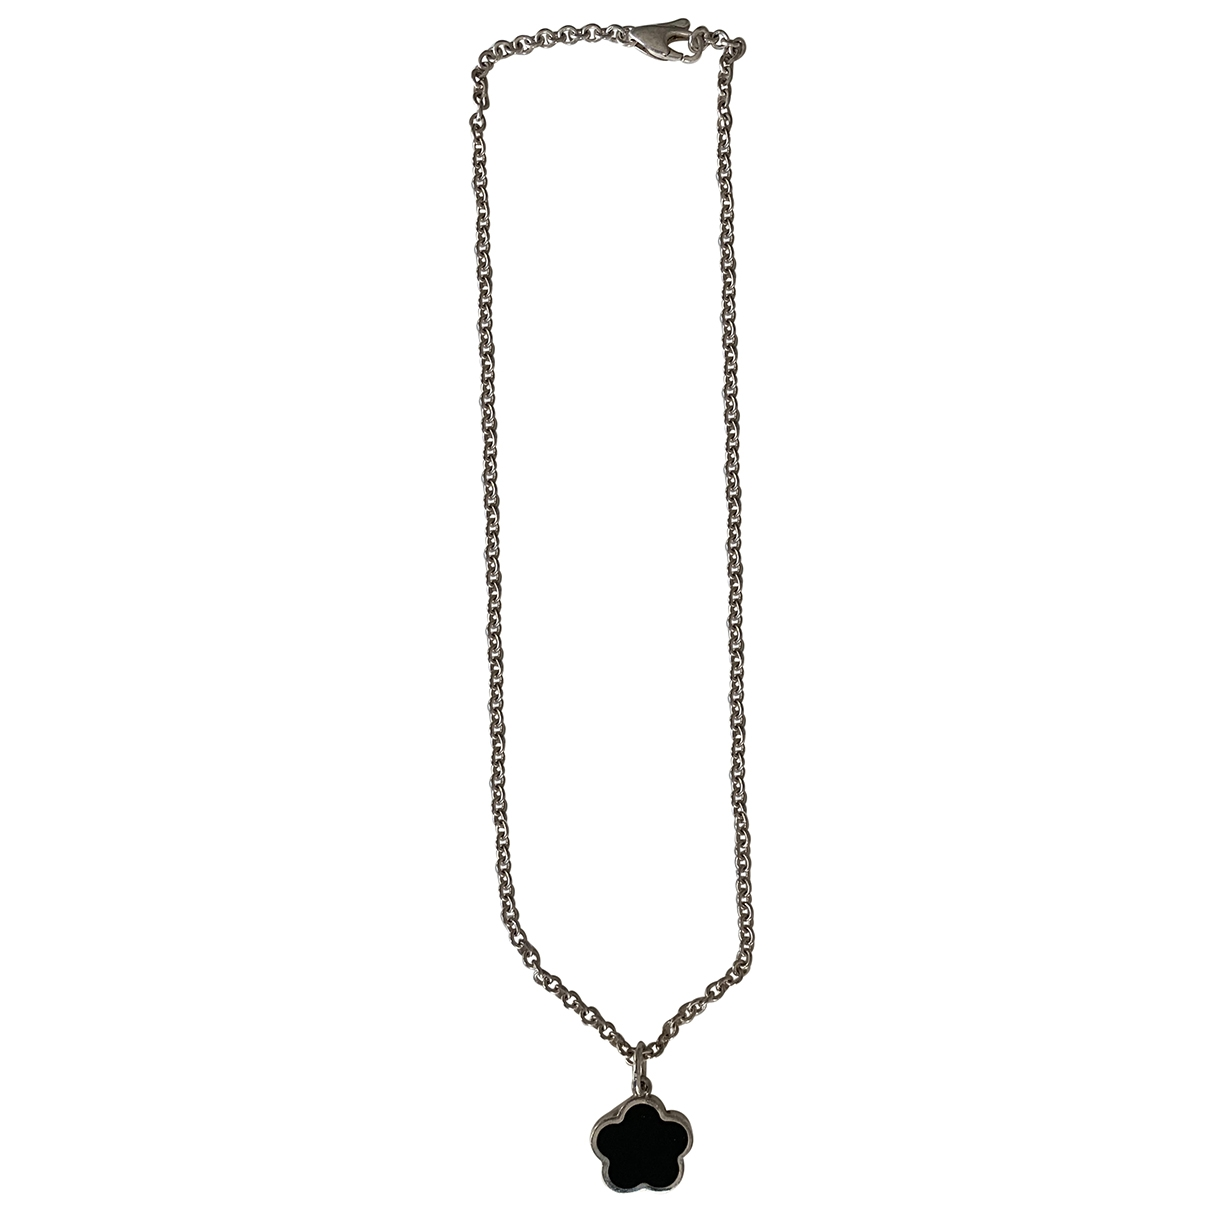 Christofle \N Silver necklace for Women \N